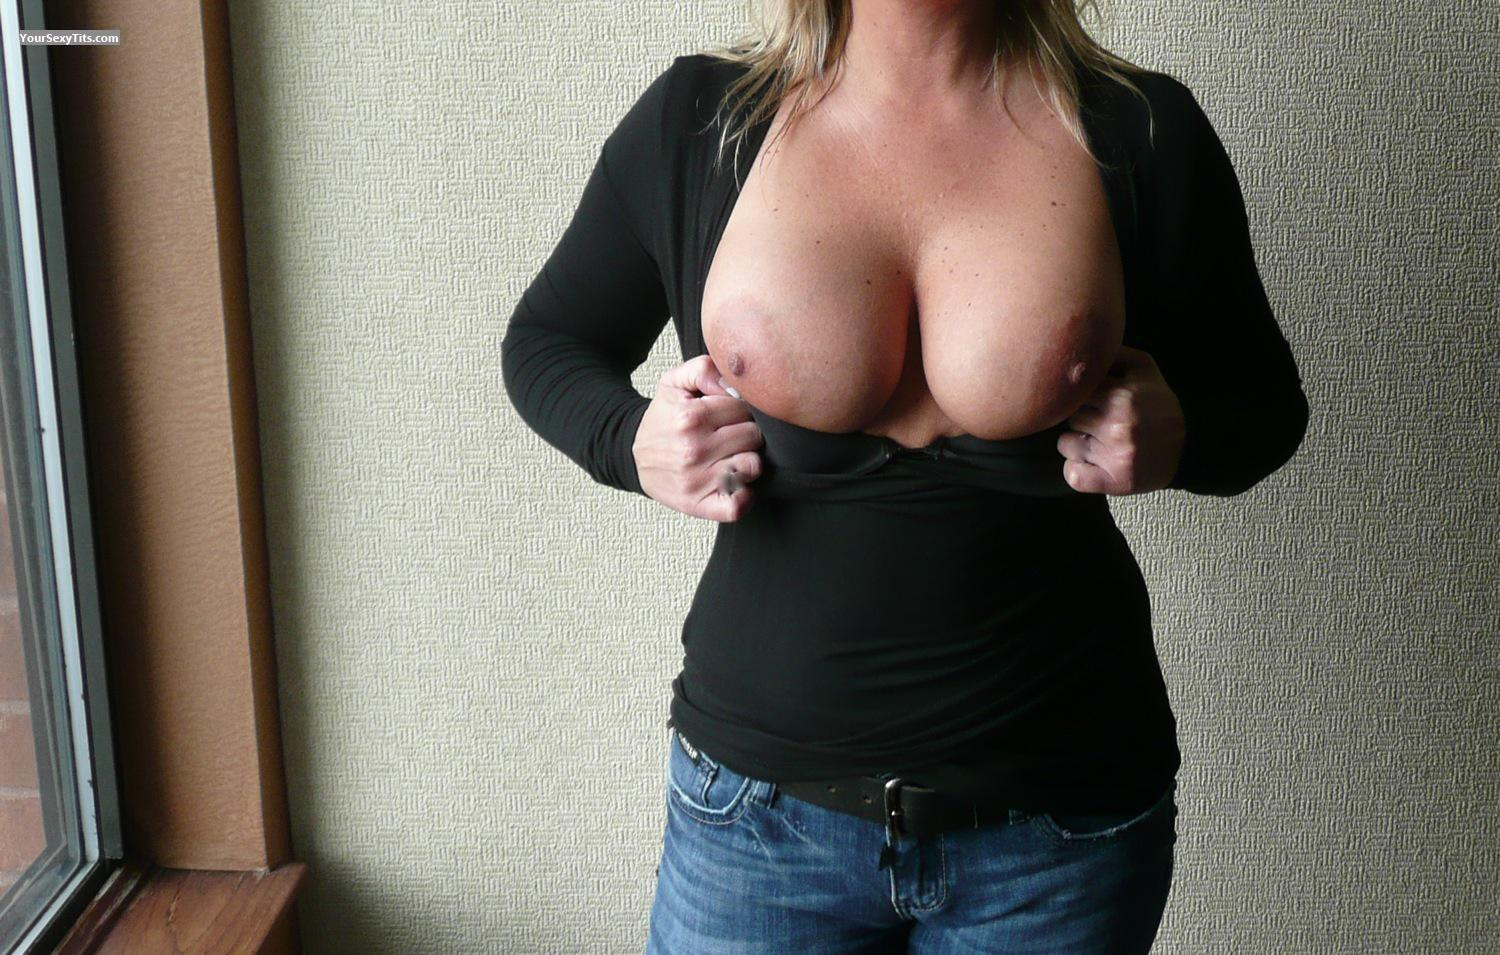 Tit Flash: Very Big Tits - 40's MILF from United States